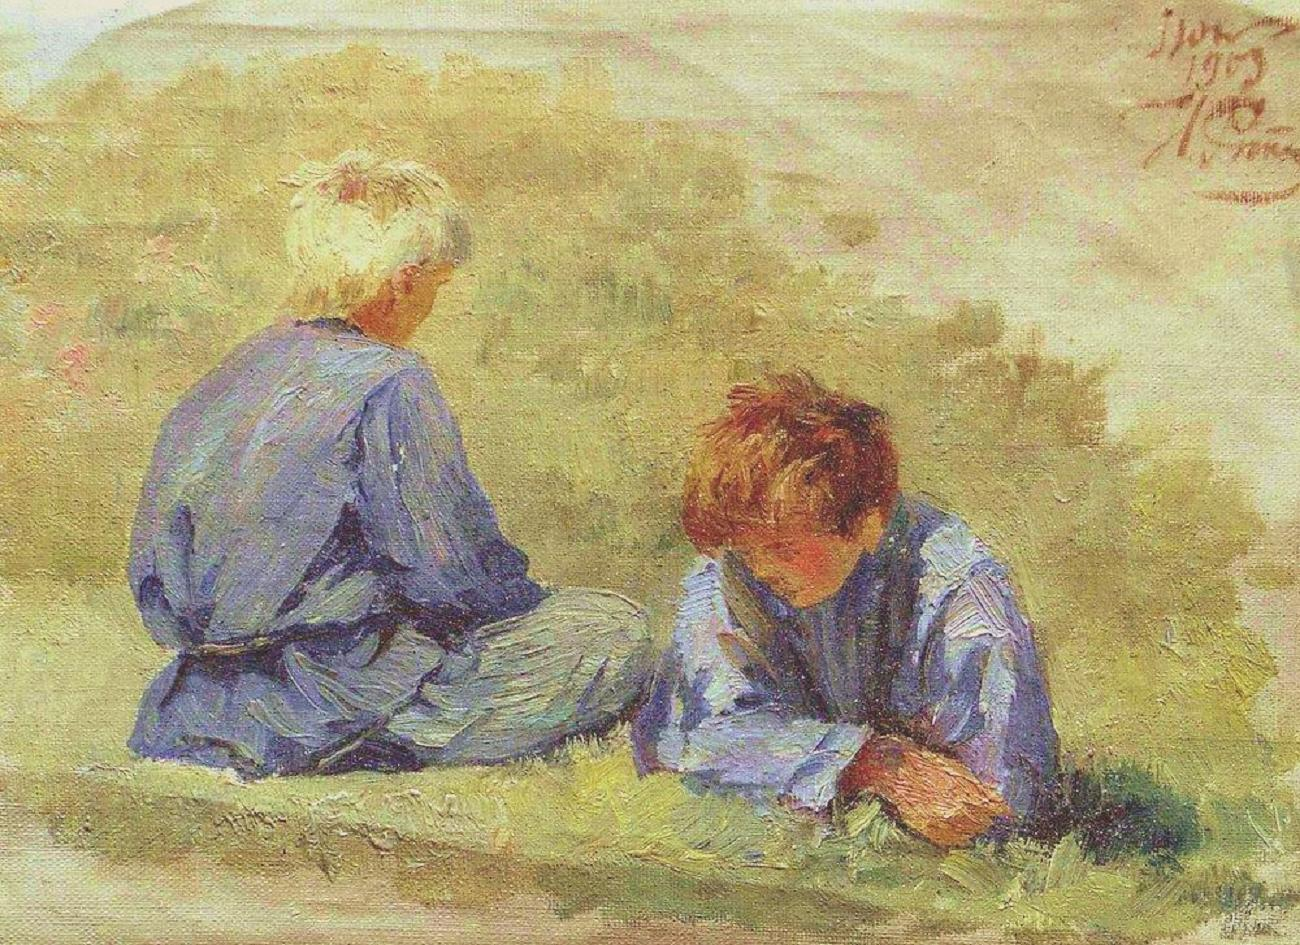 ilya-repin-boys-on-the-grass-1903.jpg